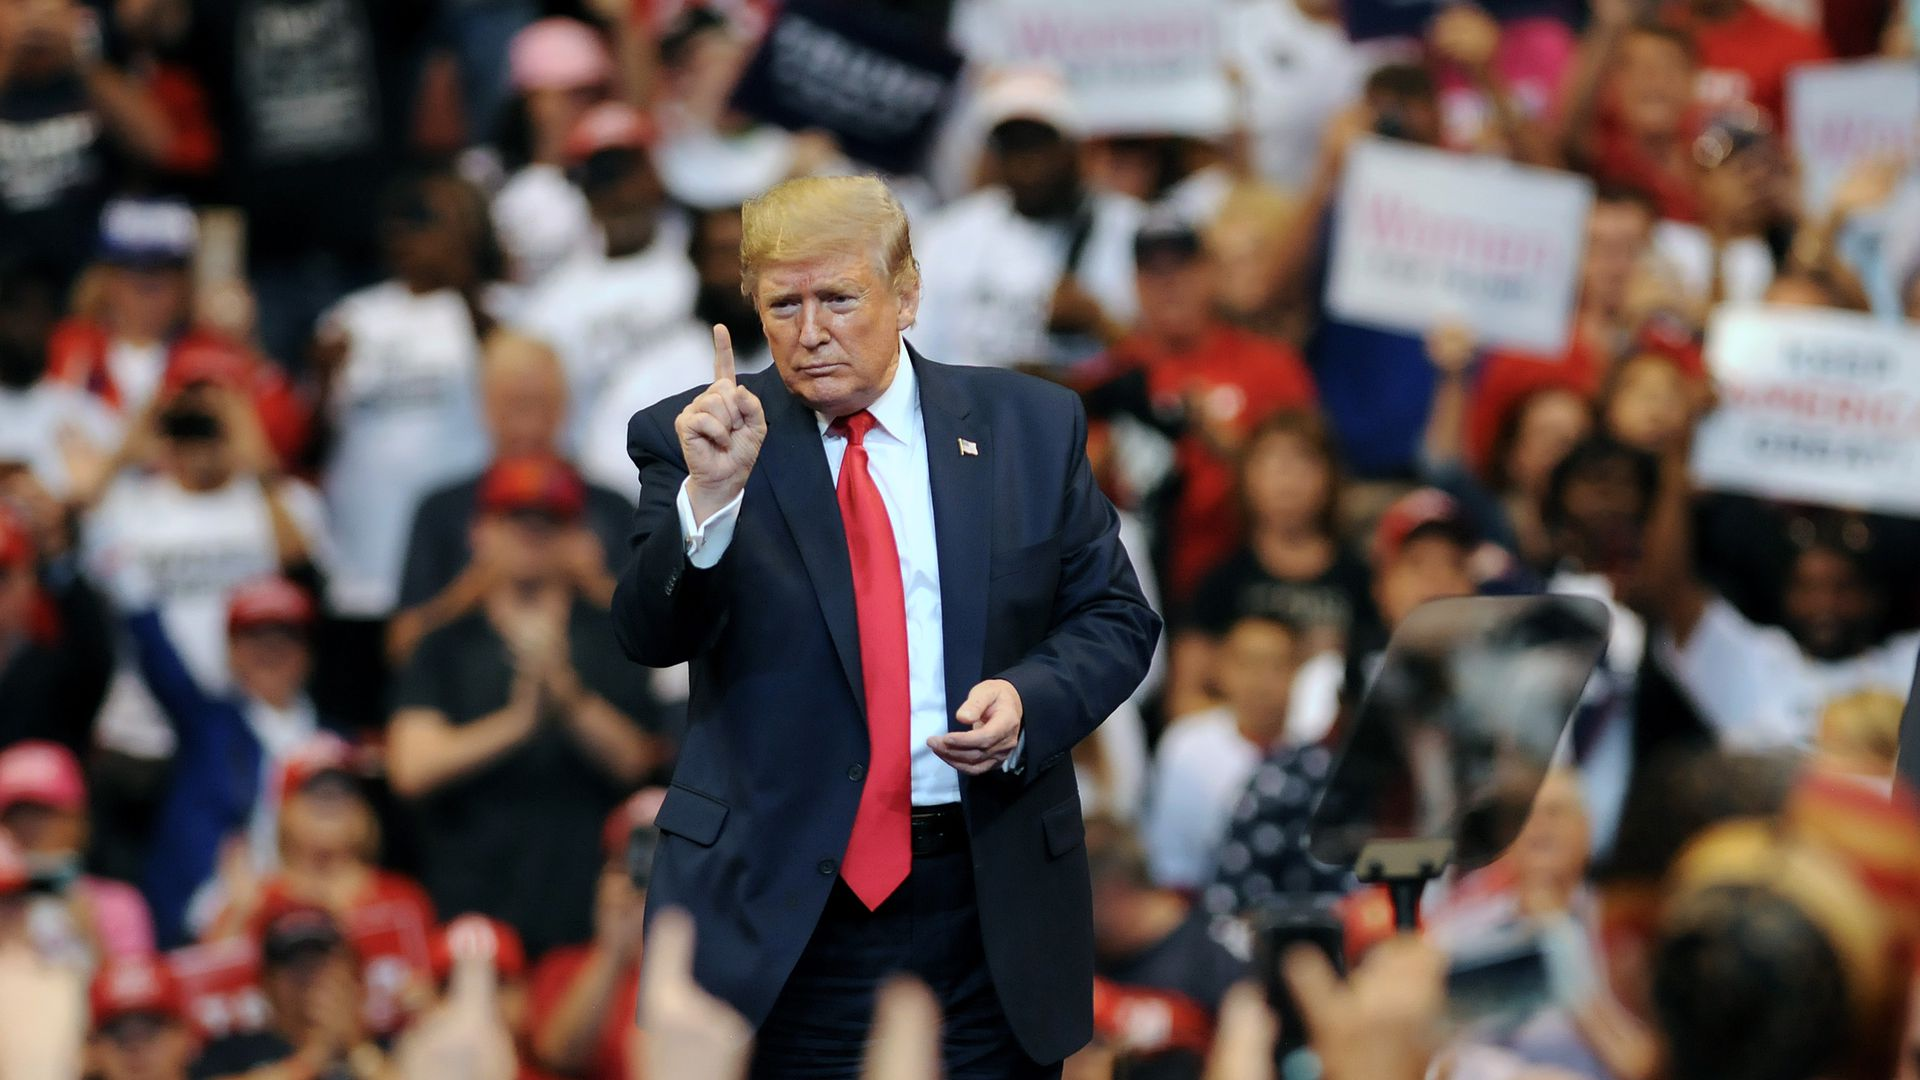 Trump wags his finger at a rally in Florida in November